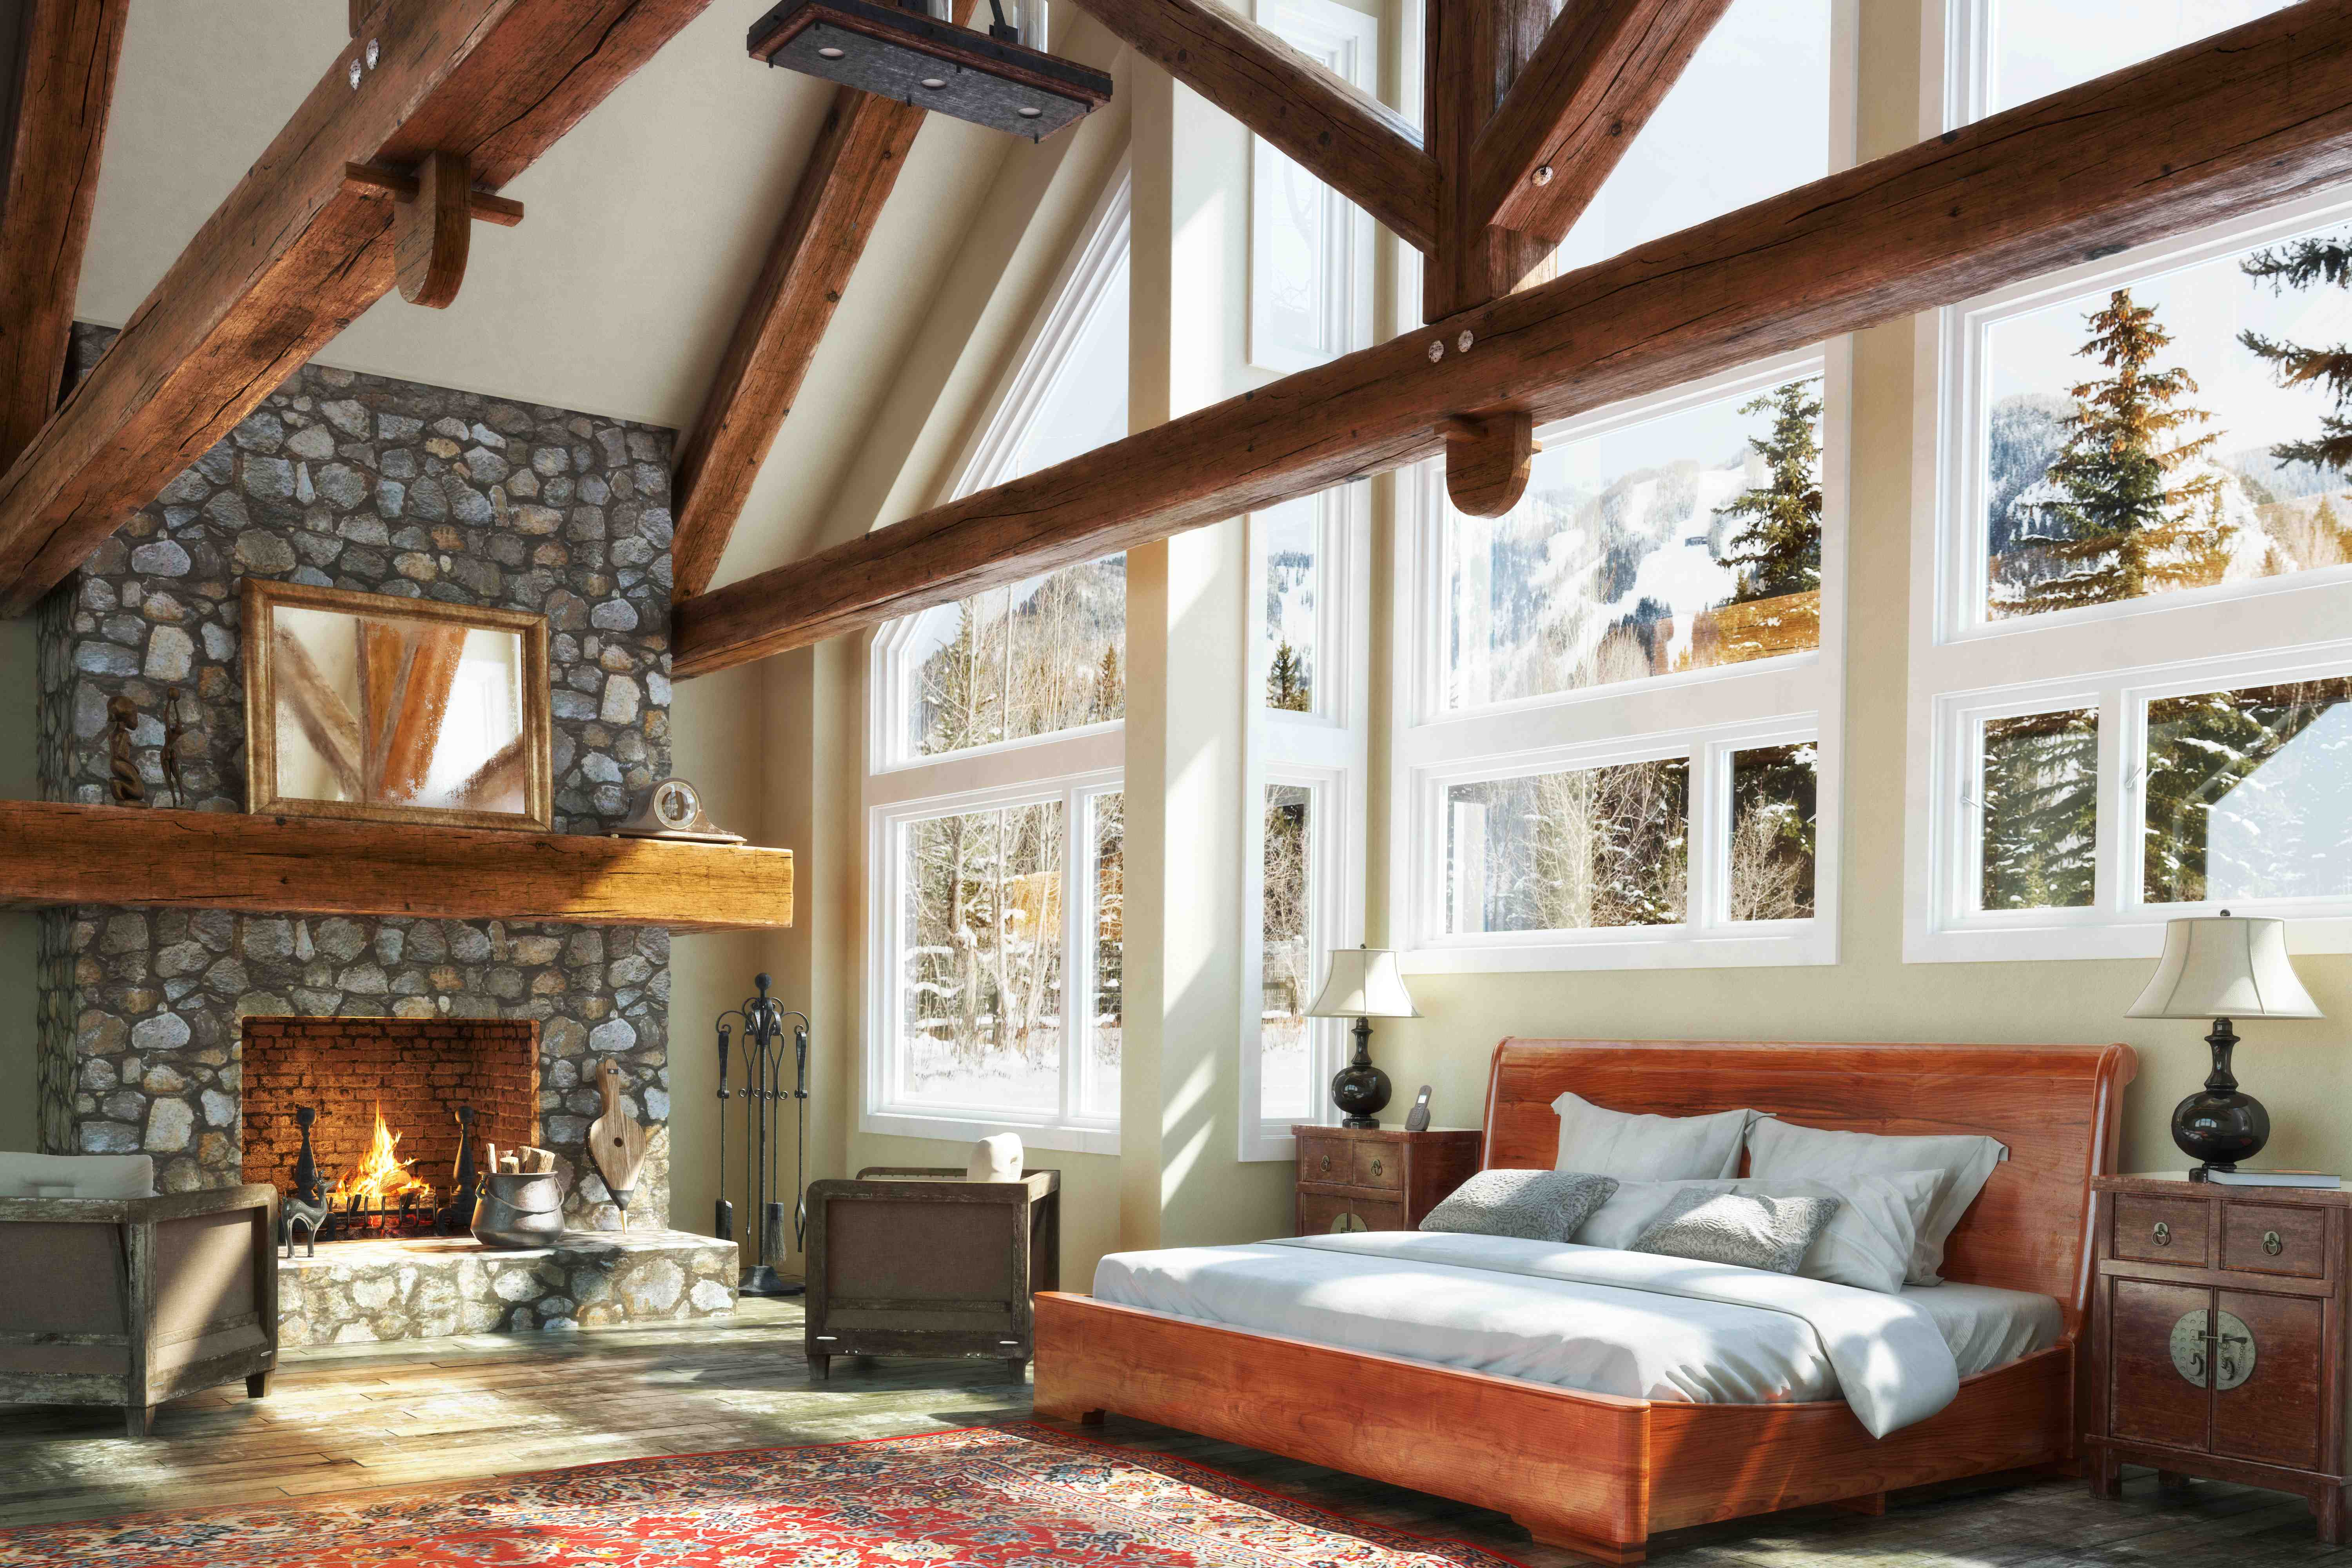 5 Simple Ways to Create a Cozy Cabin This Fall